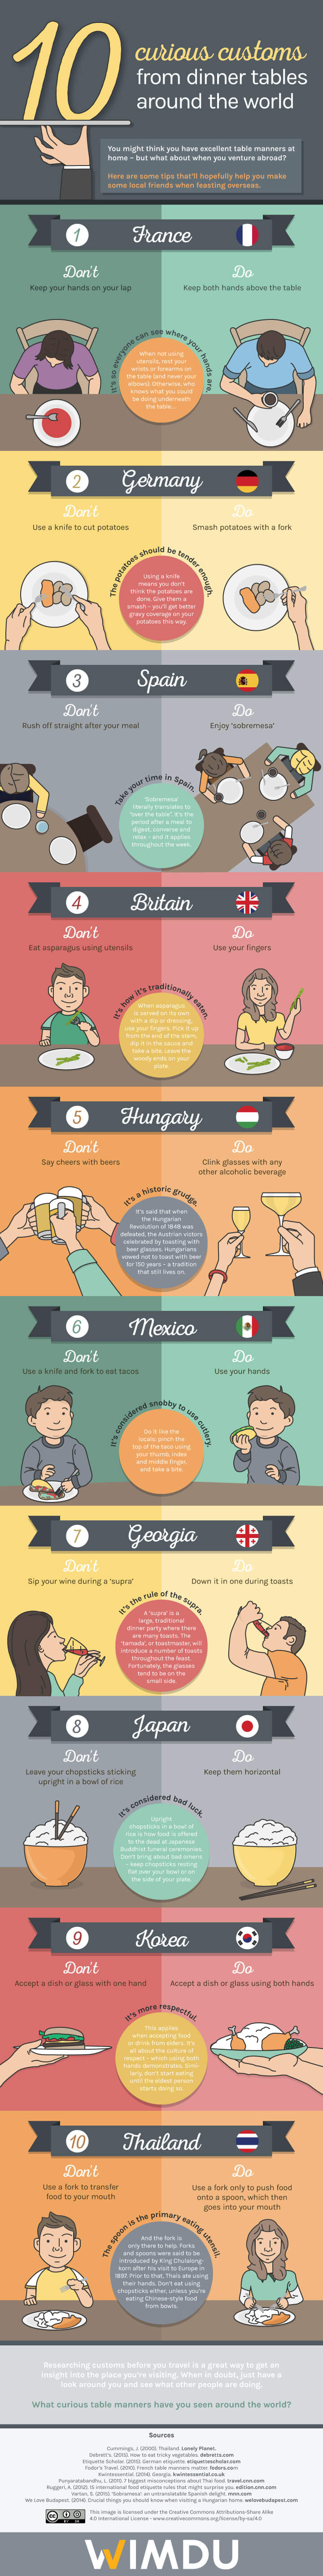 Infographic: 10 Curious customs from dinner tables around the world